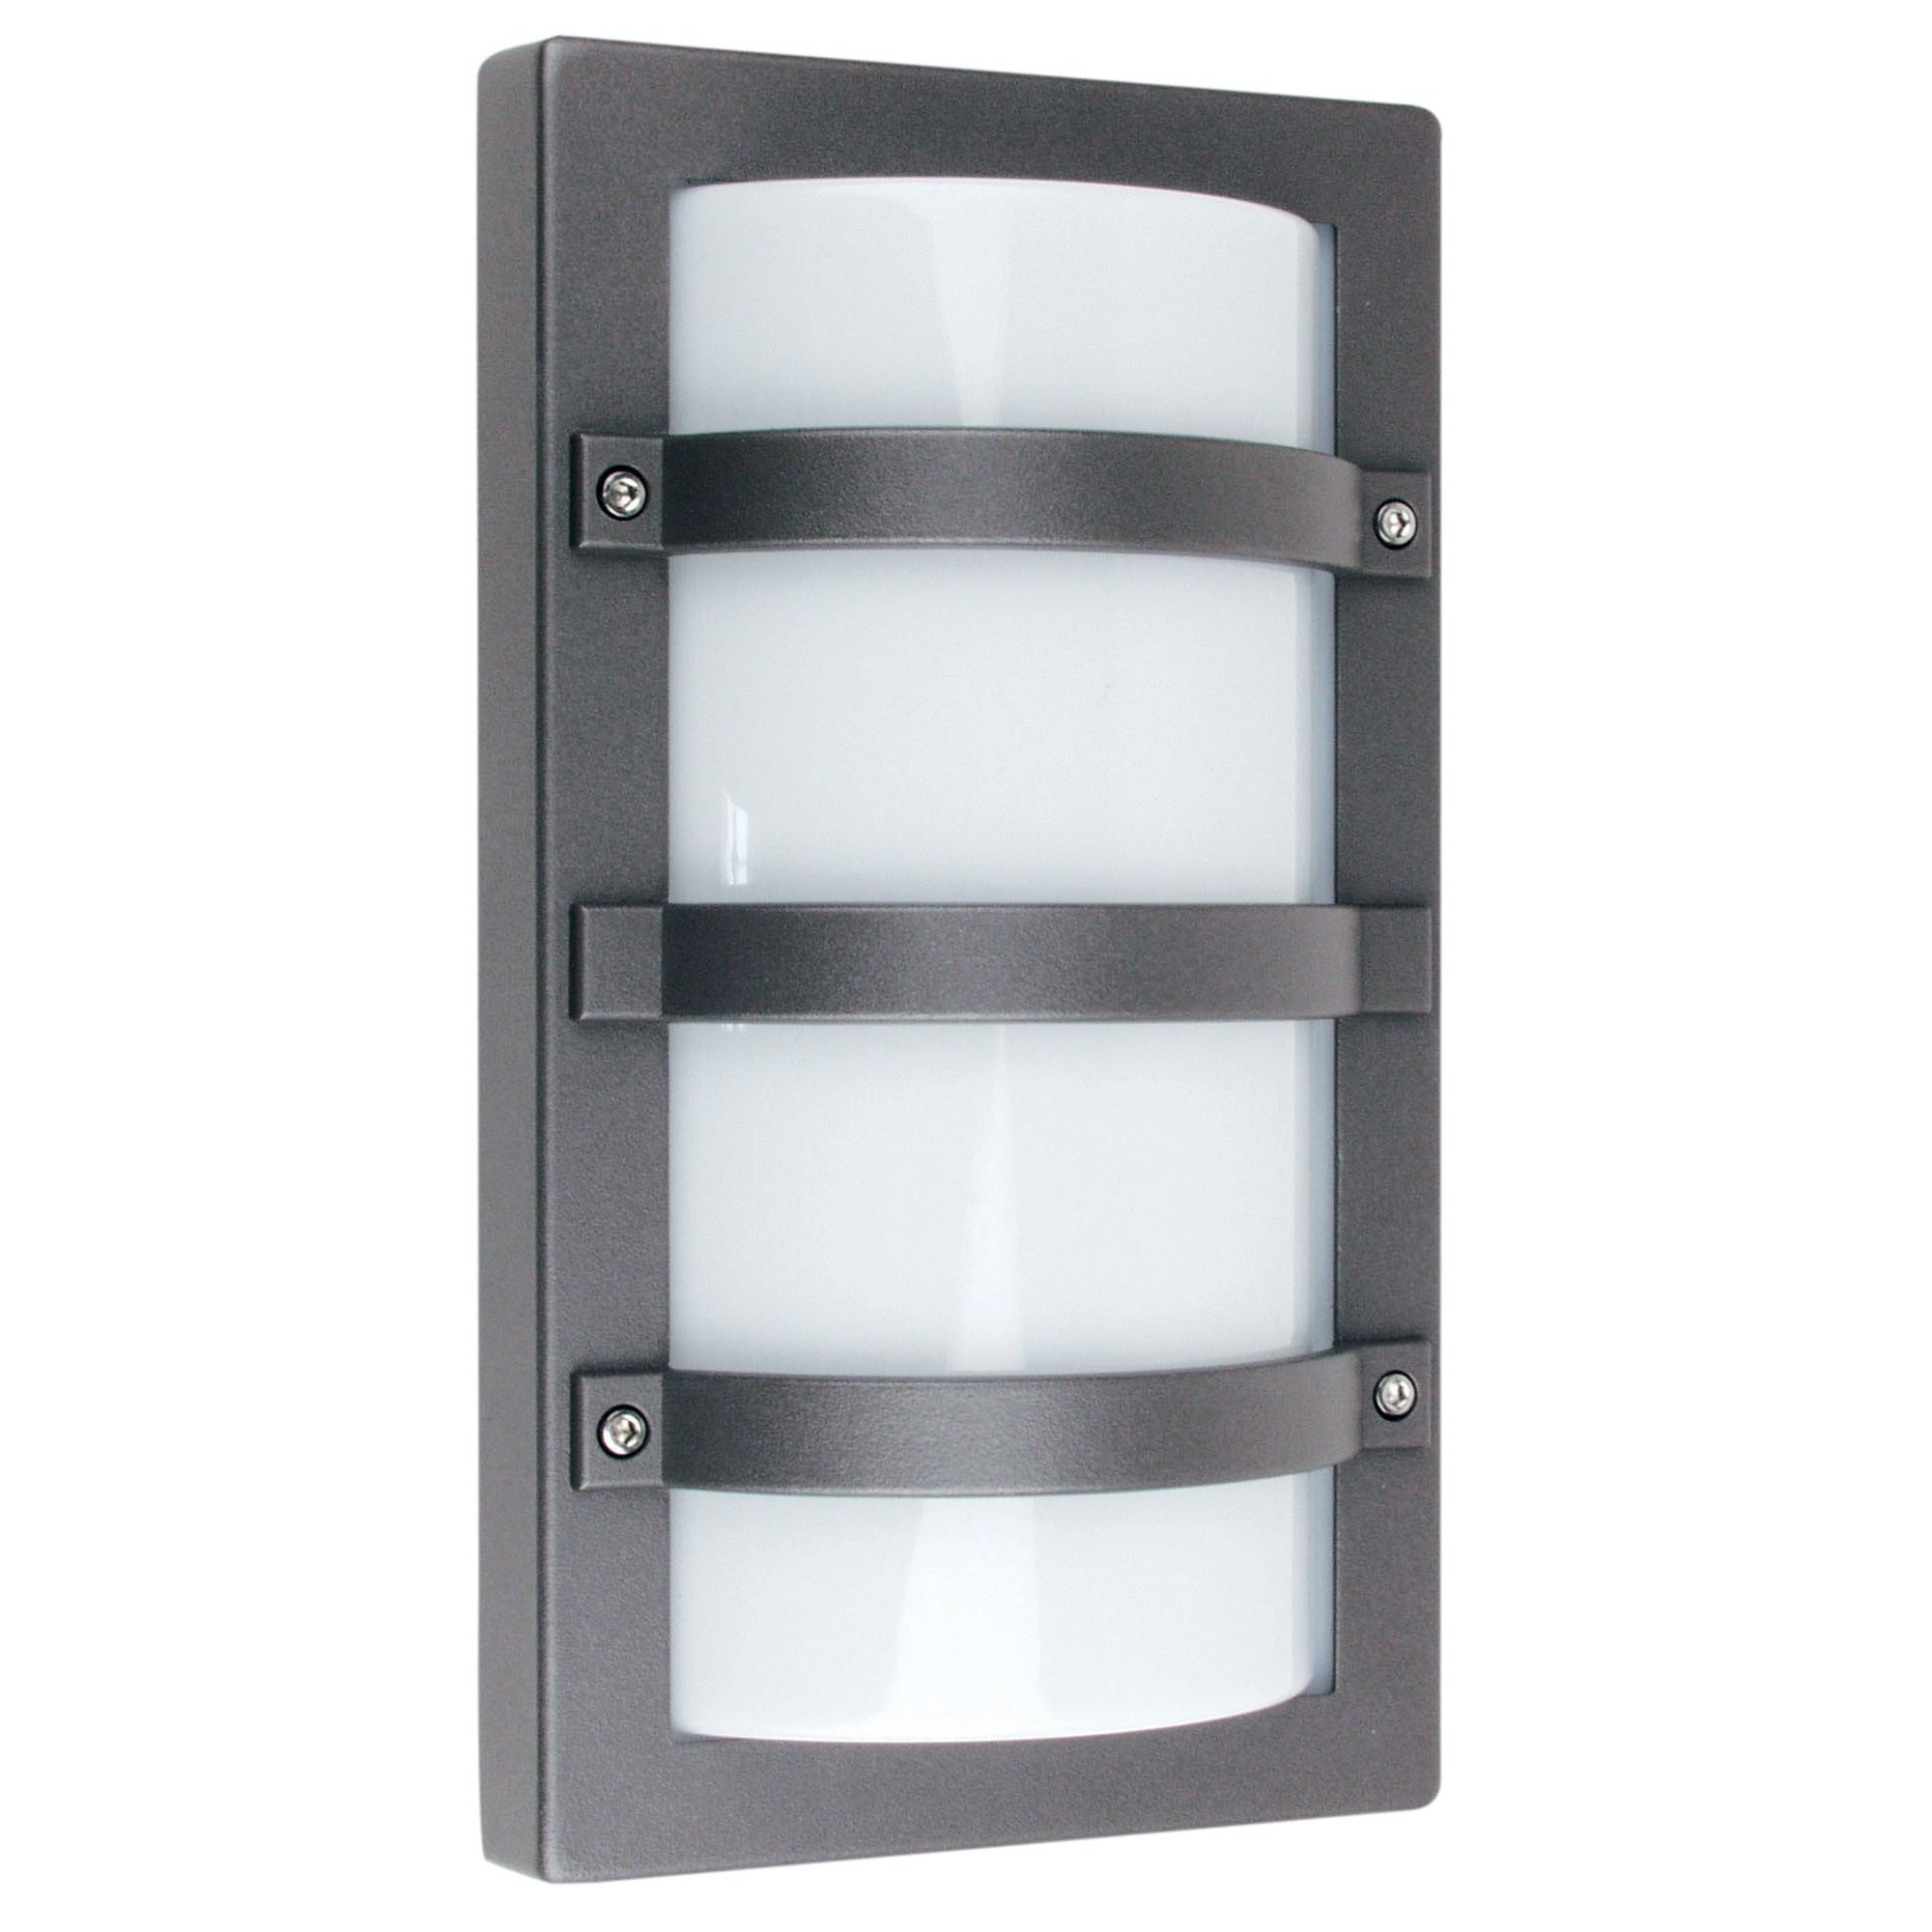 Trio IP65 Commercial Grade Exterior Bunker Wall Light, Large, Graphite